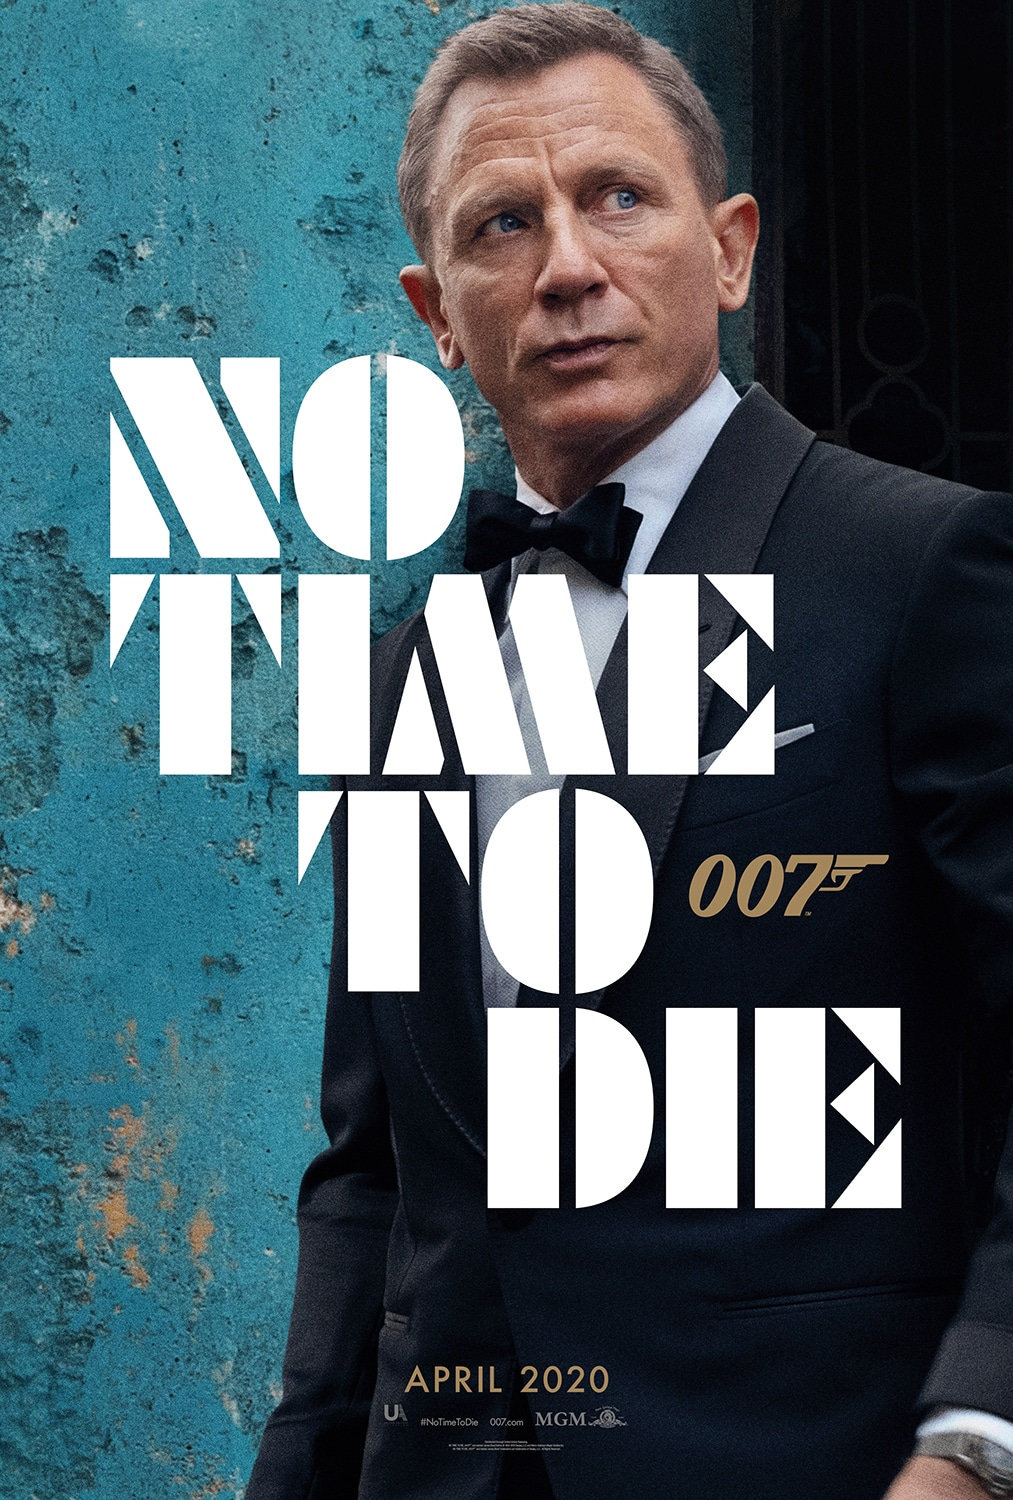 James Bond: No Time to Die Poster